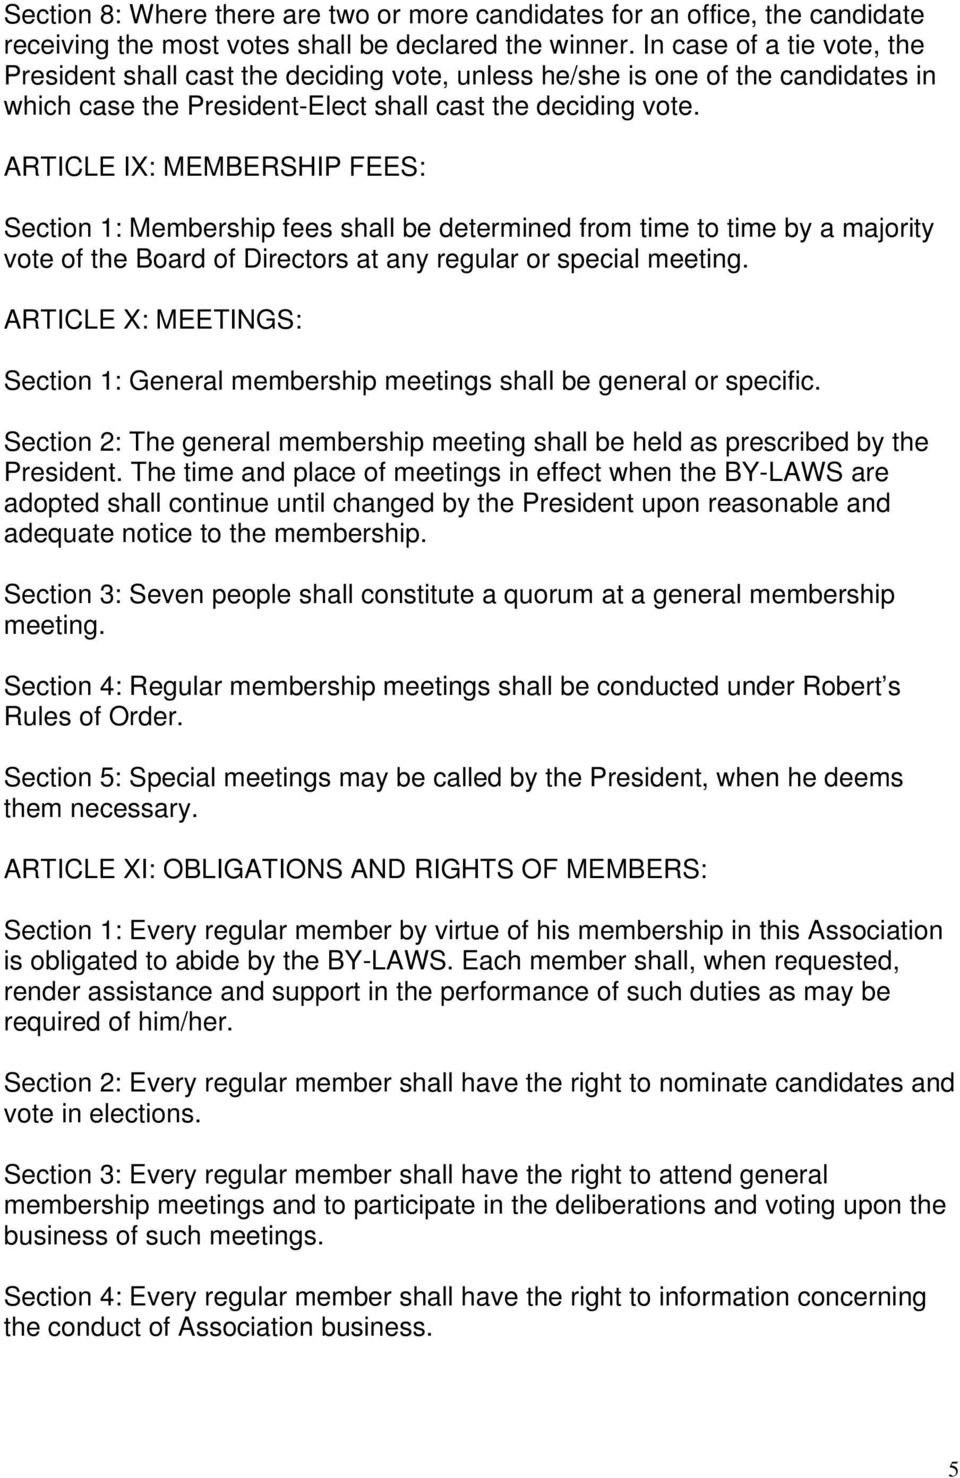 ARTICLE IX: MEMBERSHIP FEES: Section 1: Membership fees shall be determined from time to time by a majority vote of the Board of Directors at any regular or special meeting.